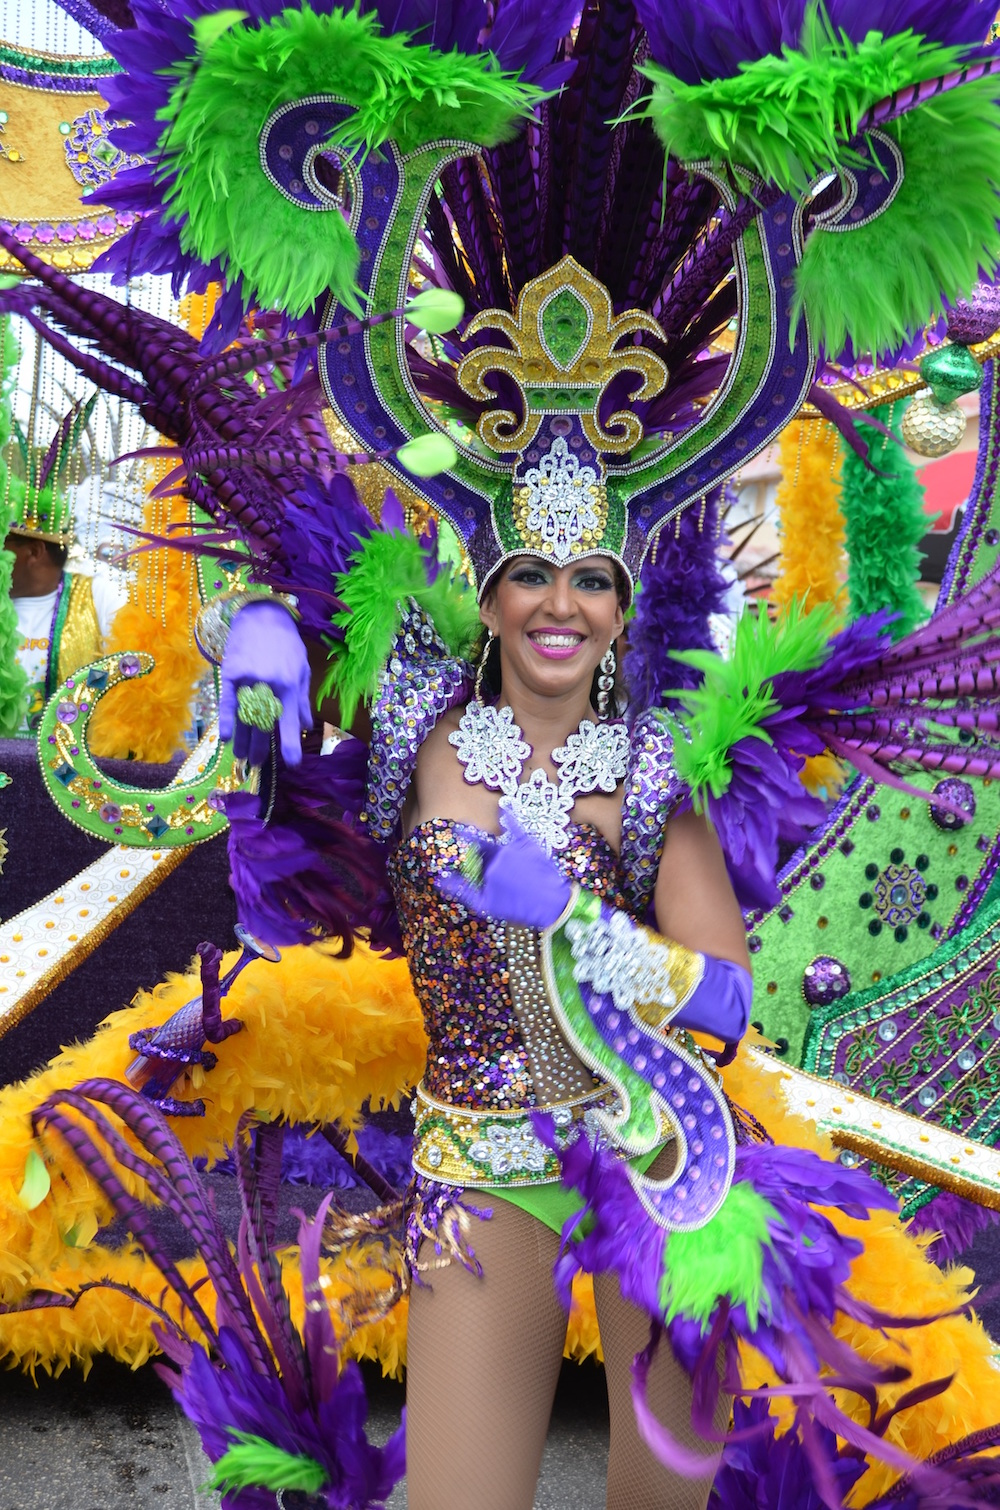 Carnival is where the party's at. Image courtesy of the Aruba Tourism Authortiy.